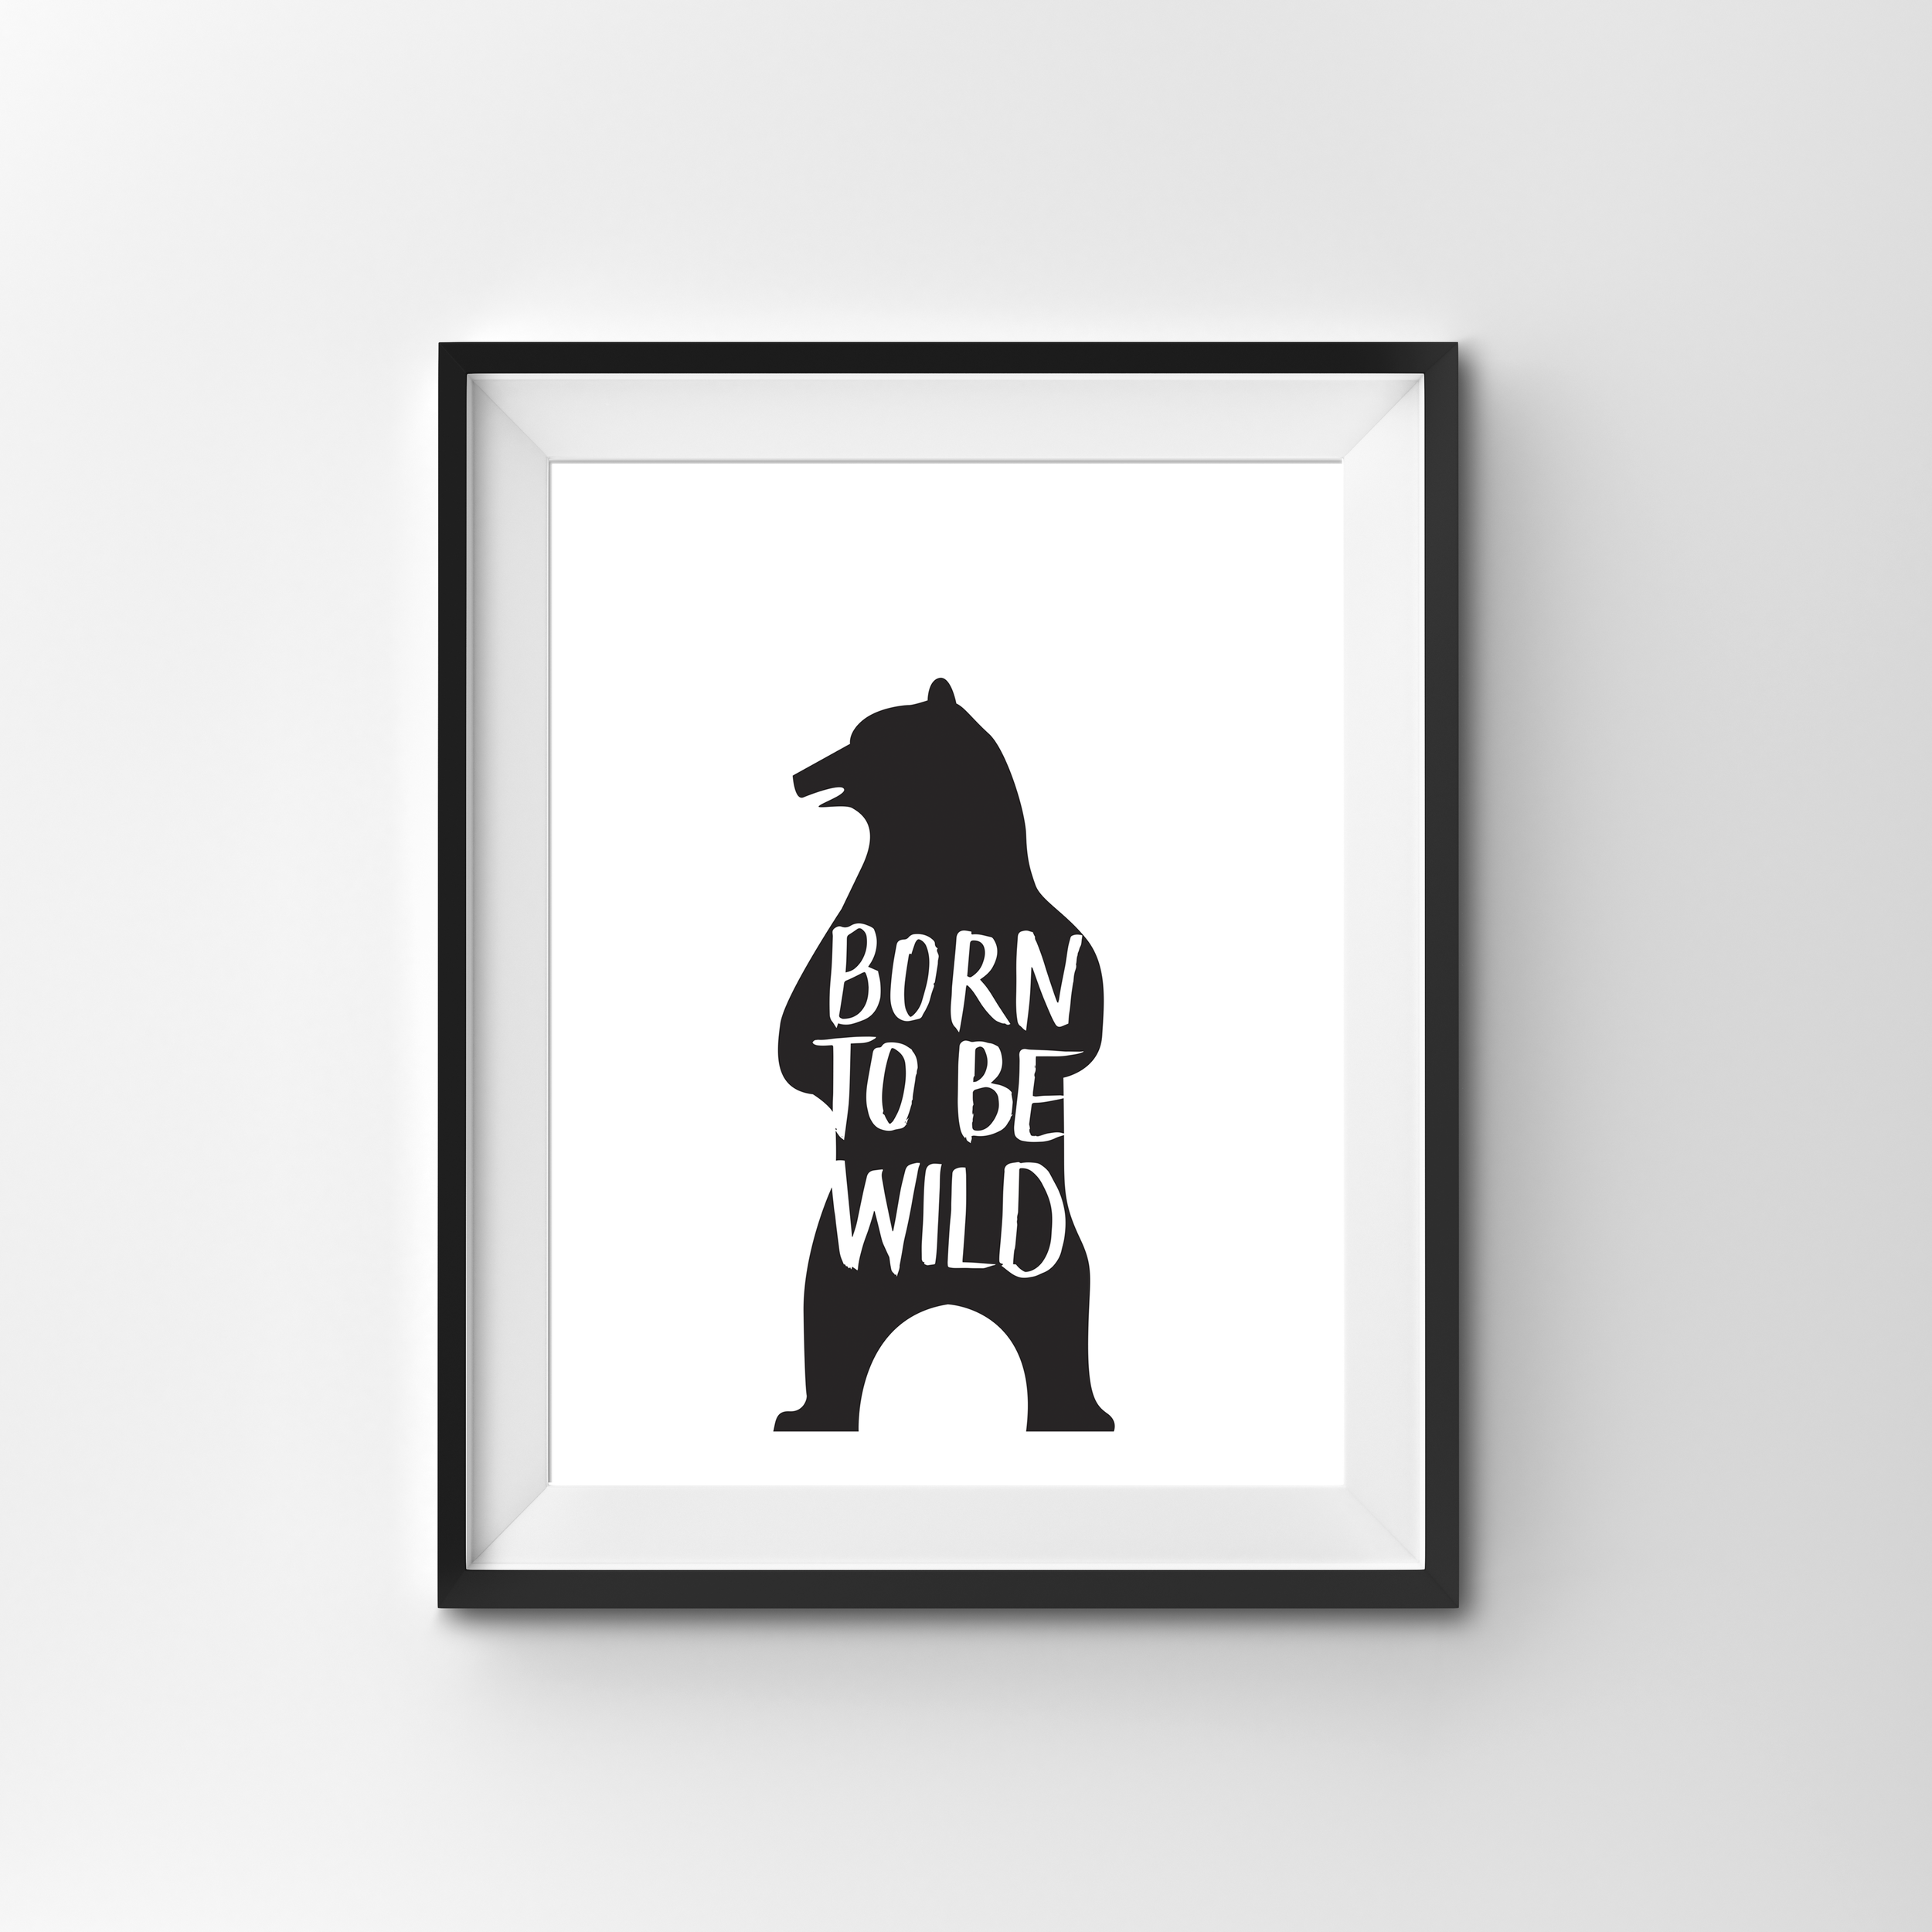 WILD   BLACK & WHITE PRINT PRINTED ON 300gsm TEXTURED CARD STOCK   A4 $17.00   A3 $27.00